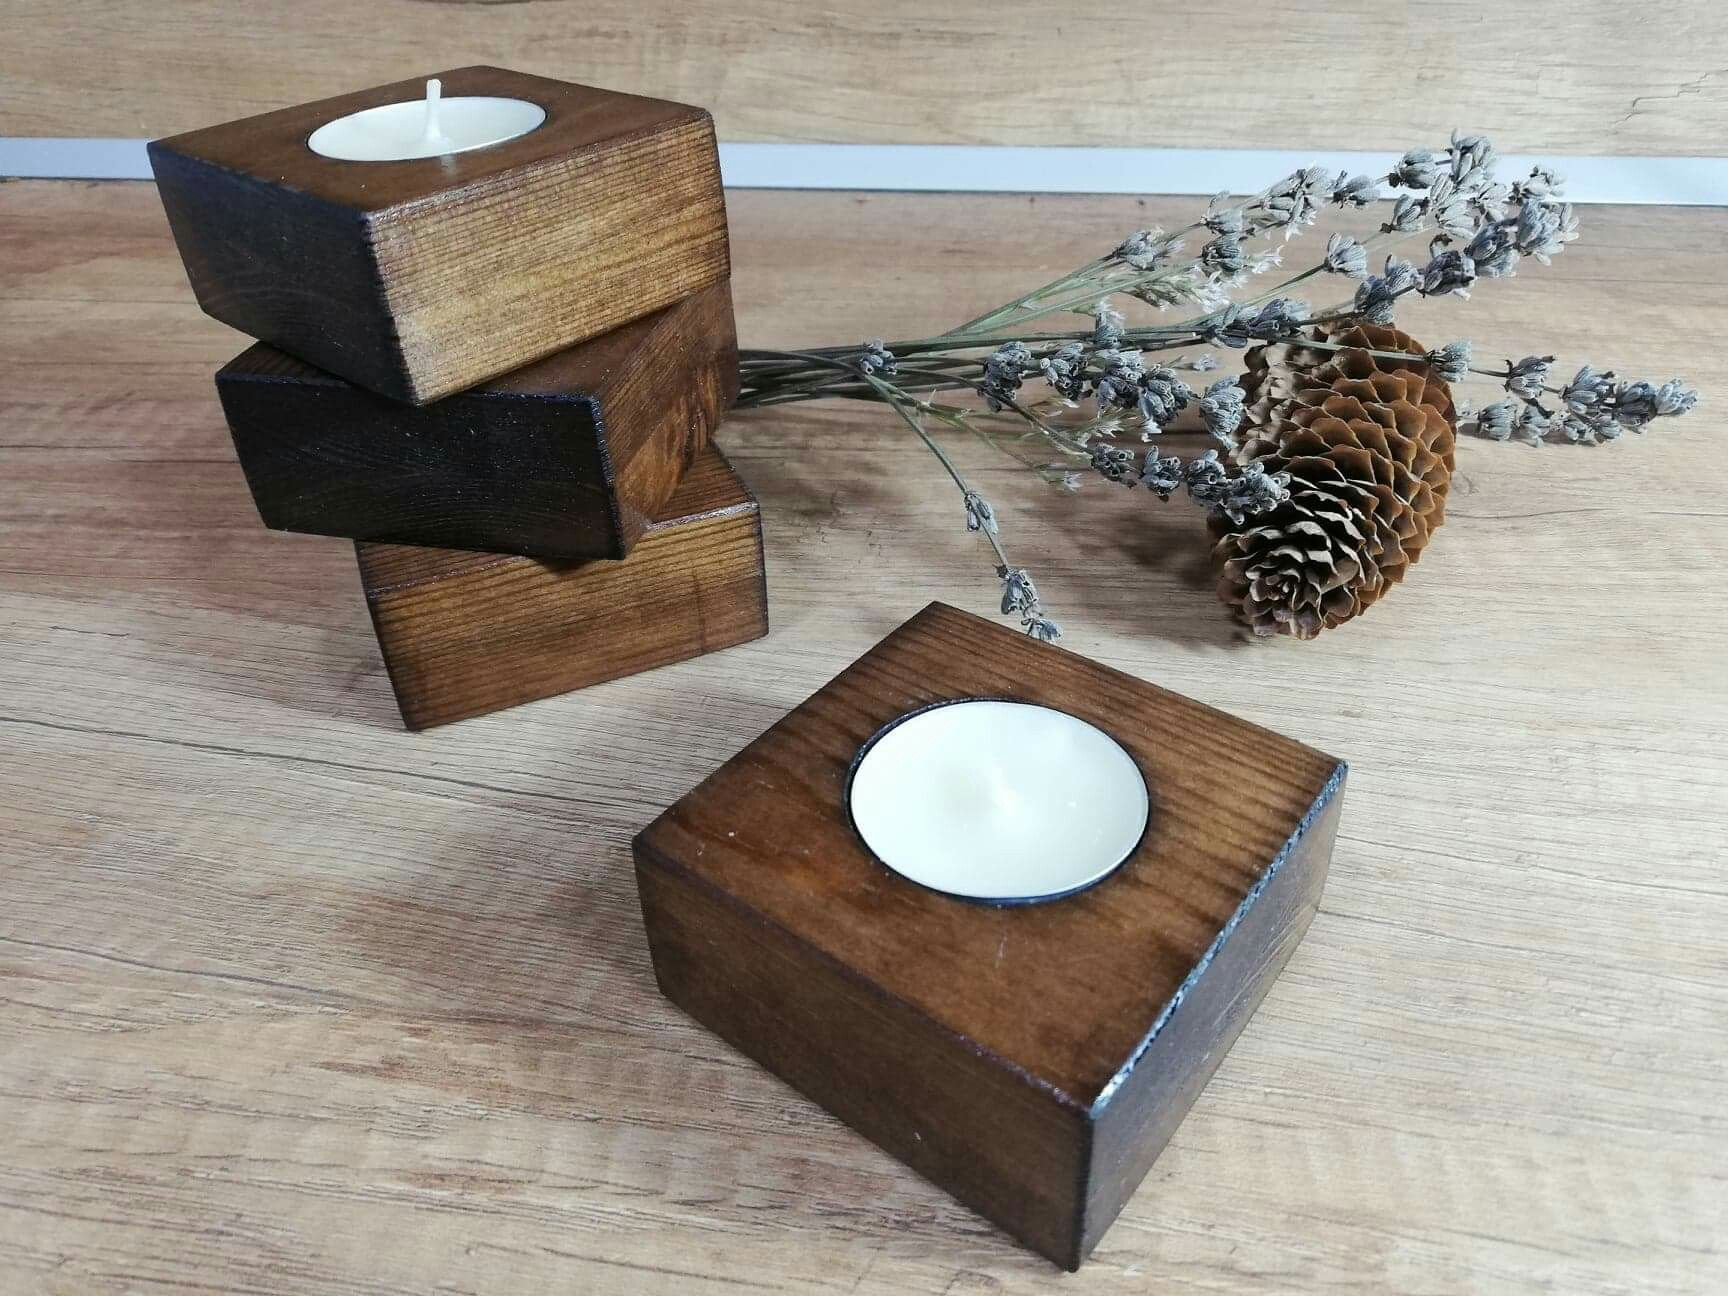 Pin By Stedding On Wood Craft Tea Light Candle Tea Lights Wood Crafts